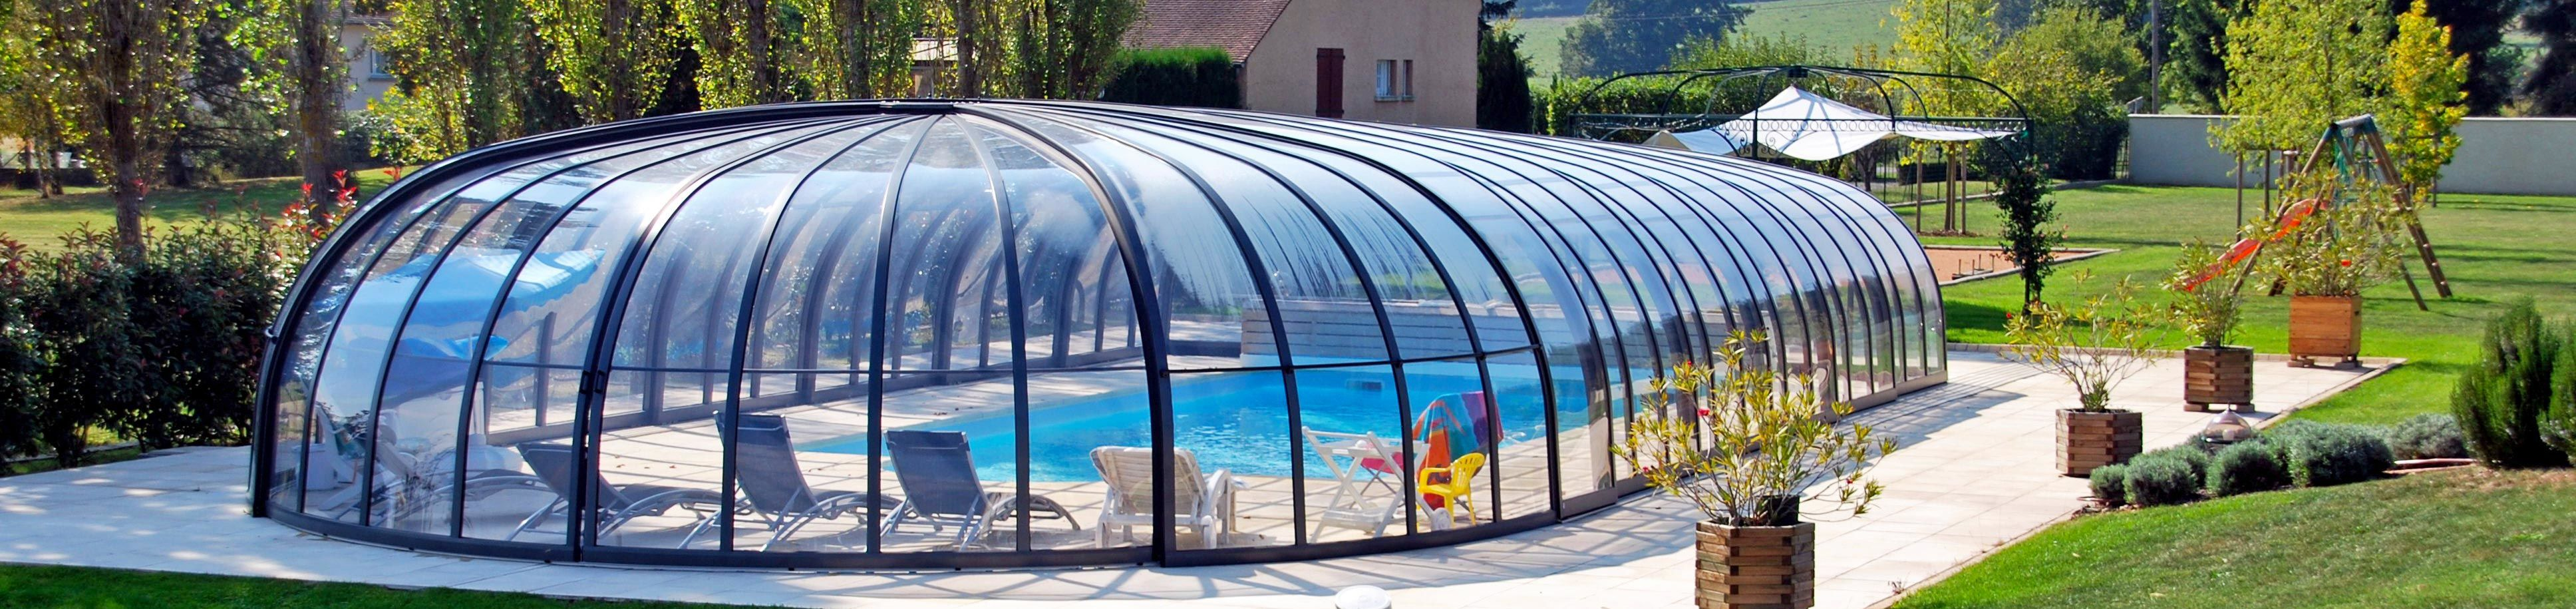 Retractable swimming pool enclosure olympic sunrooms Retractable swimming pool enclosures